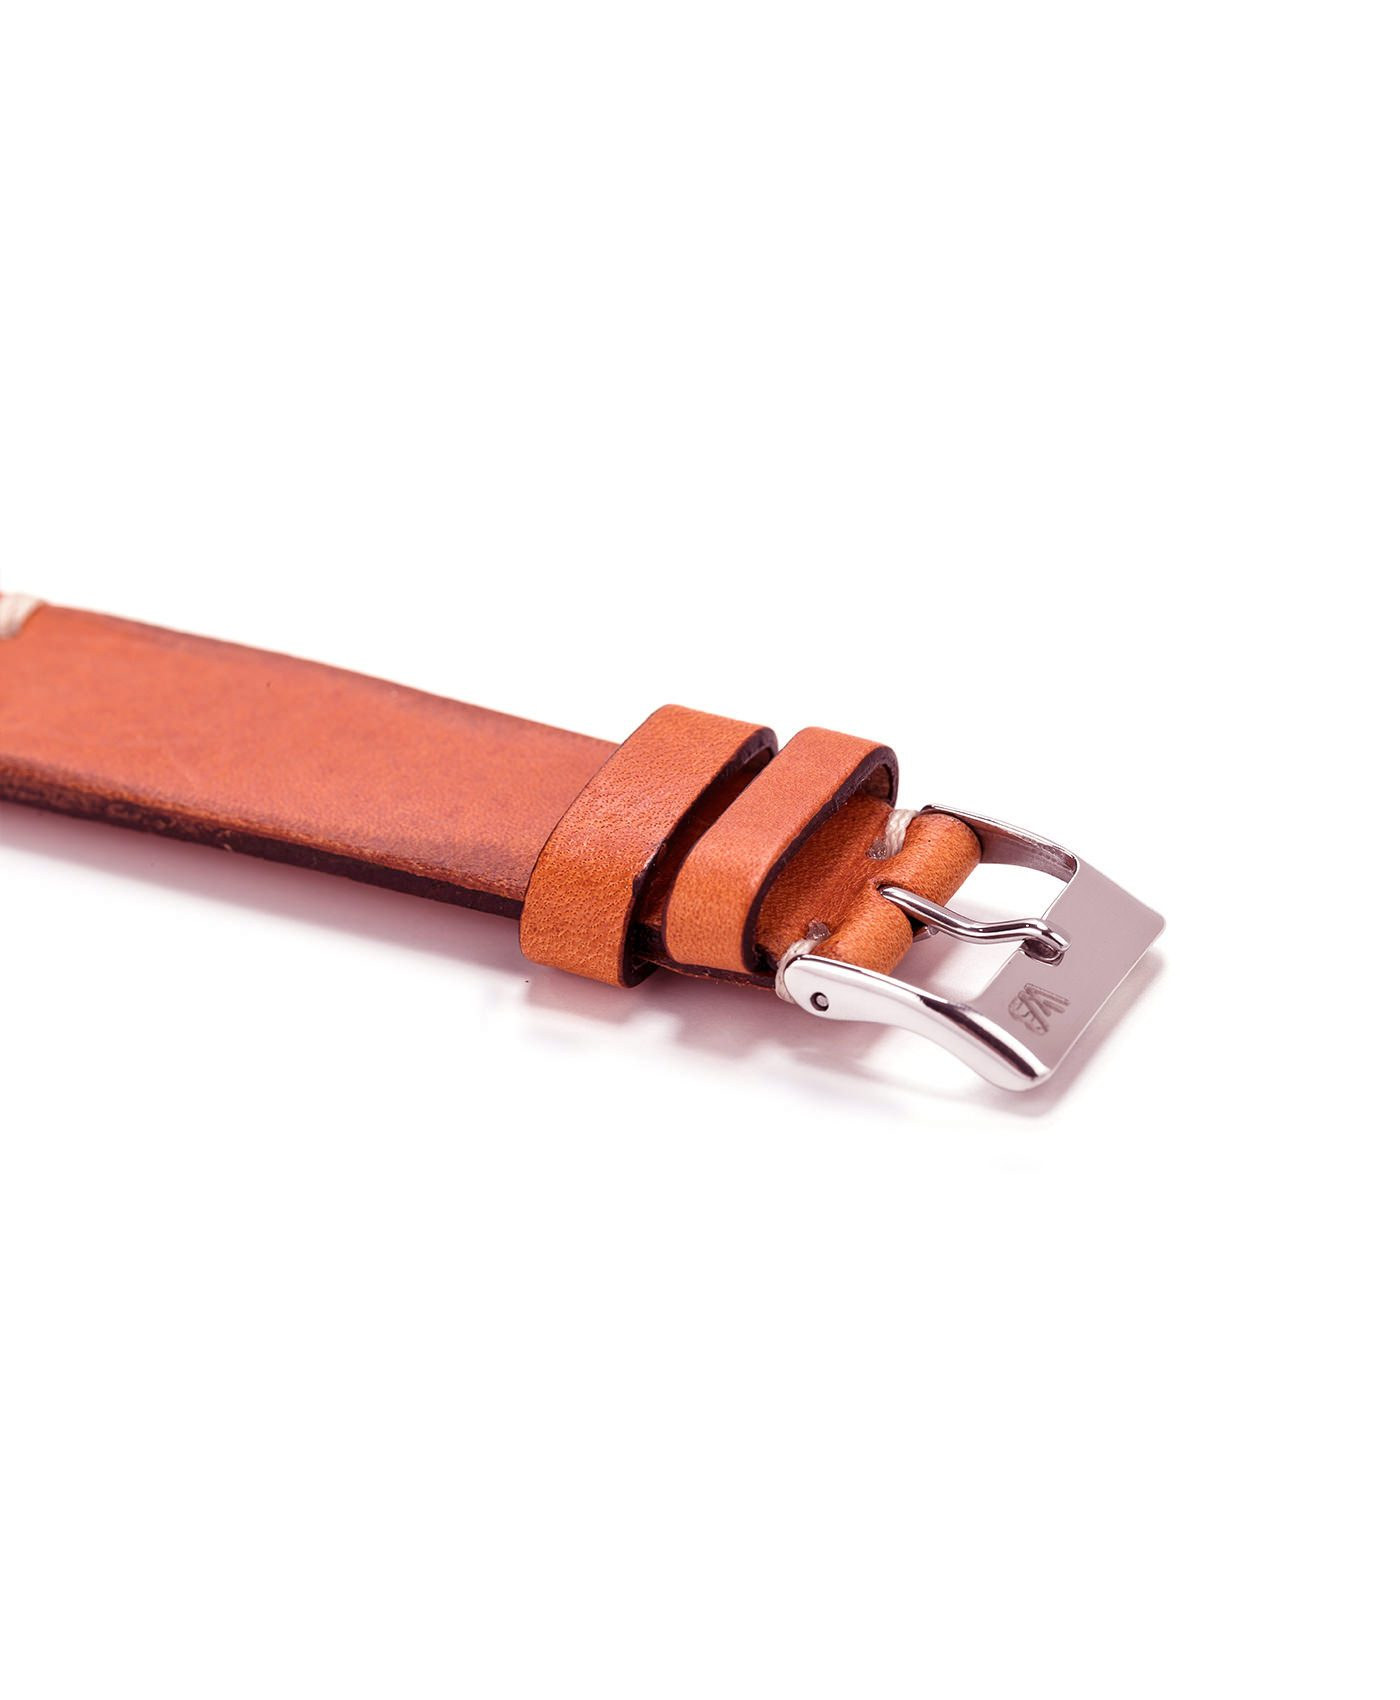 WB Original Vintage strap Cognac Brown side view